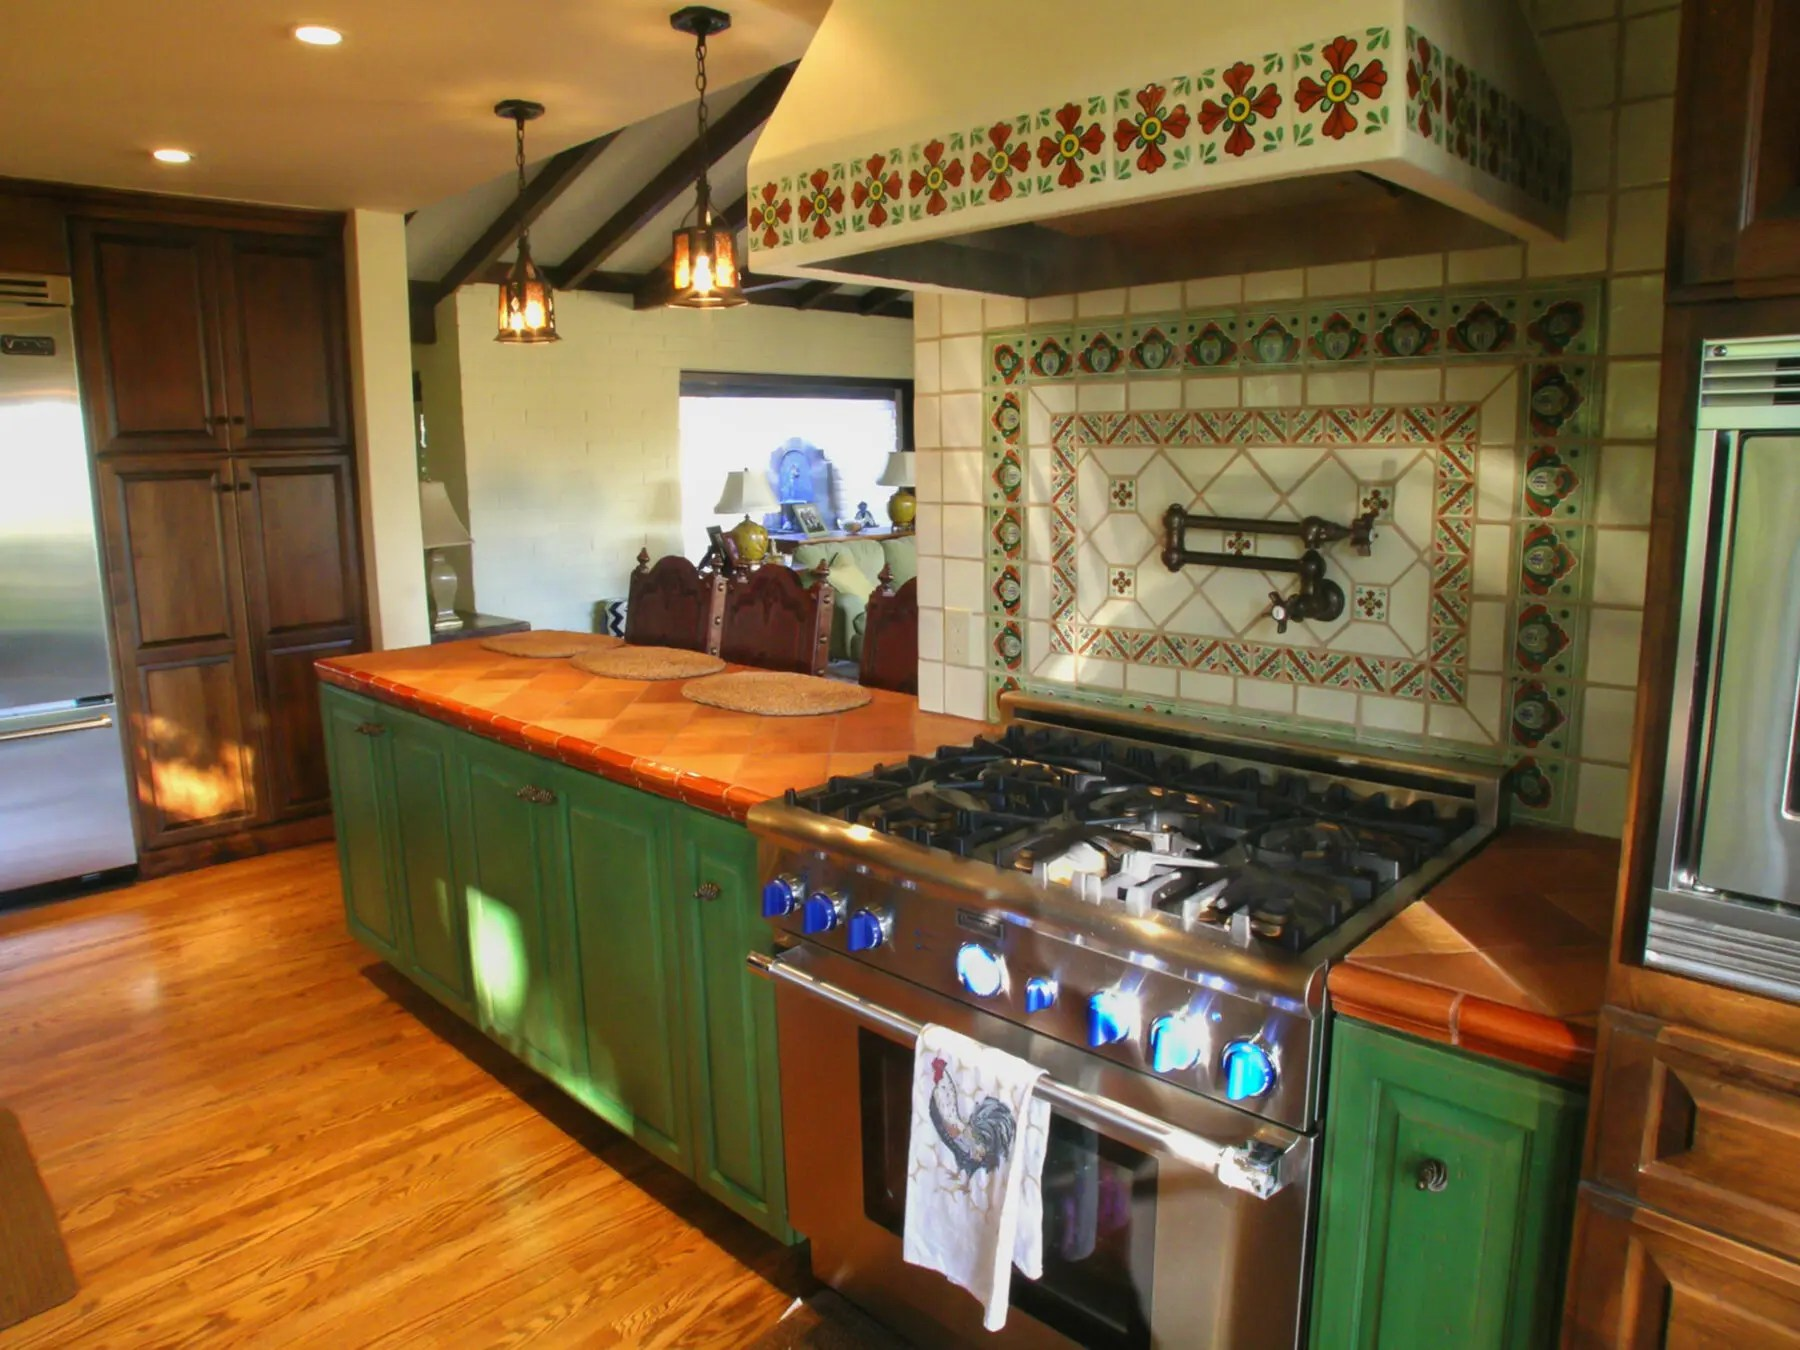 Spanish Tile Countertops Spanish Style Kitchen Remodel With Period Style Tile